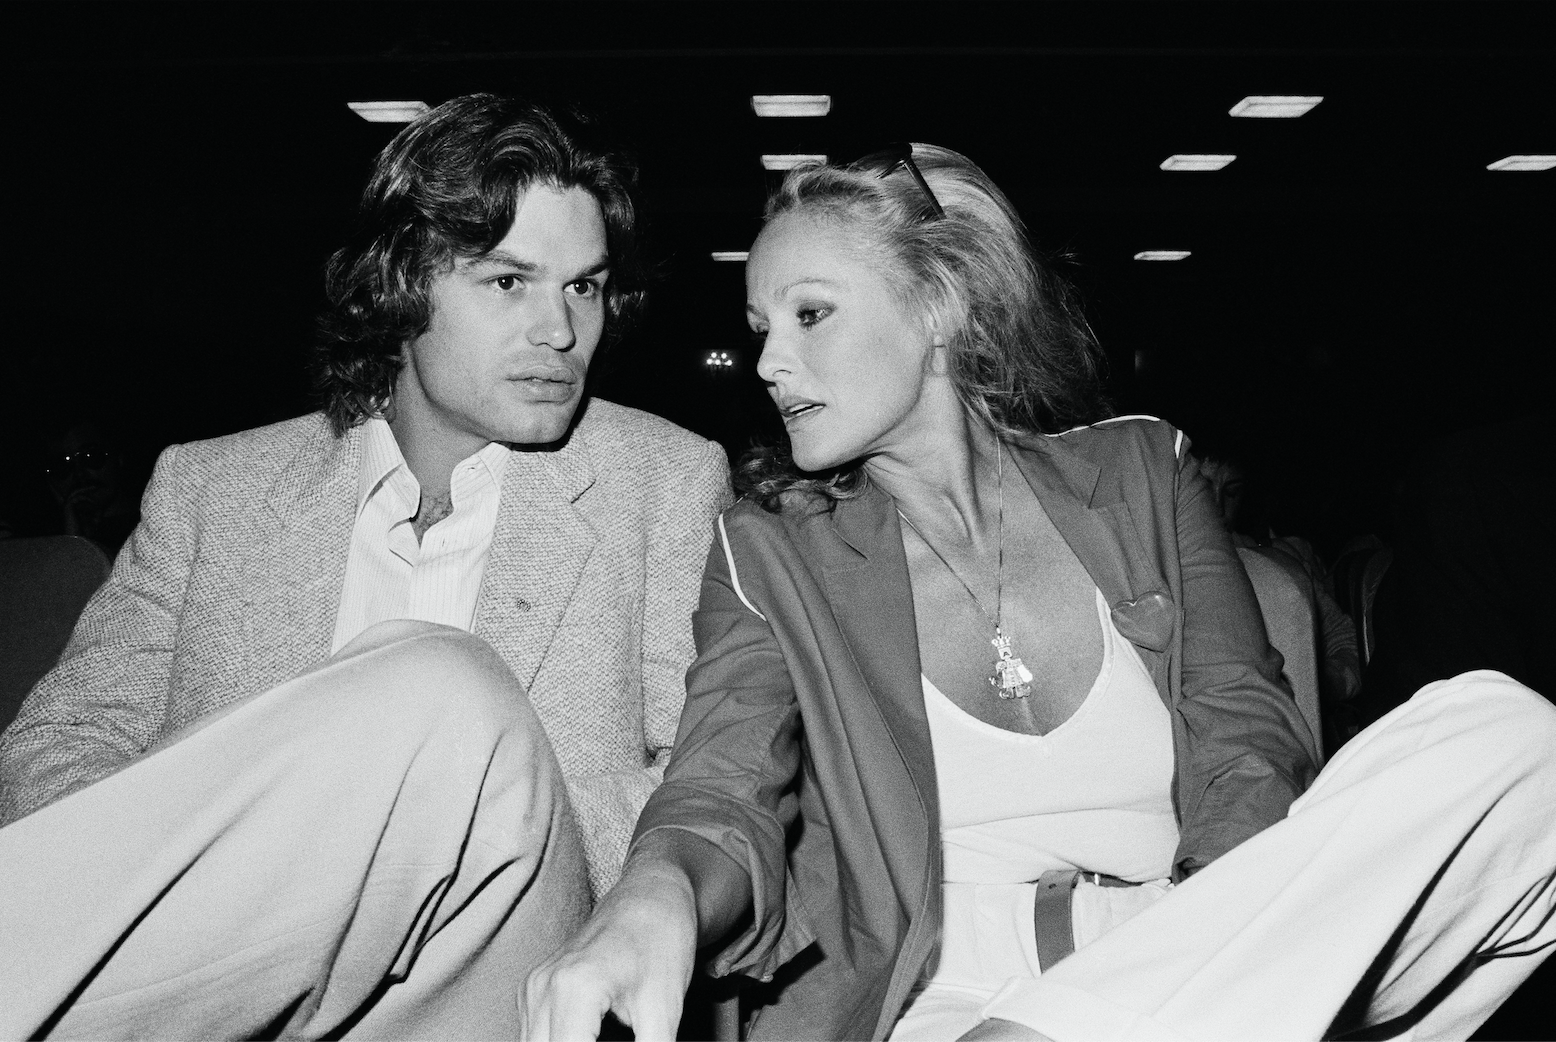 American actor Harry Hamlin and Swiss actress and a sex symbol Ursula Andress attend the 1979 Deauville American Film Festival